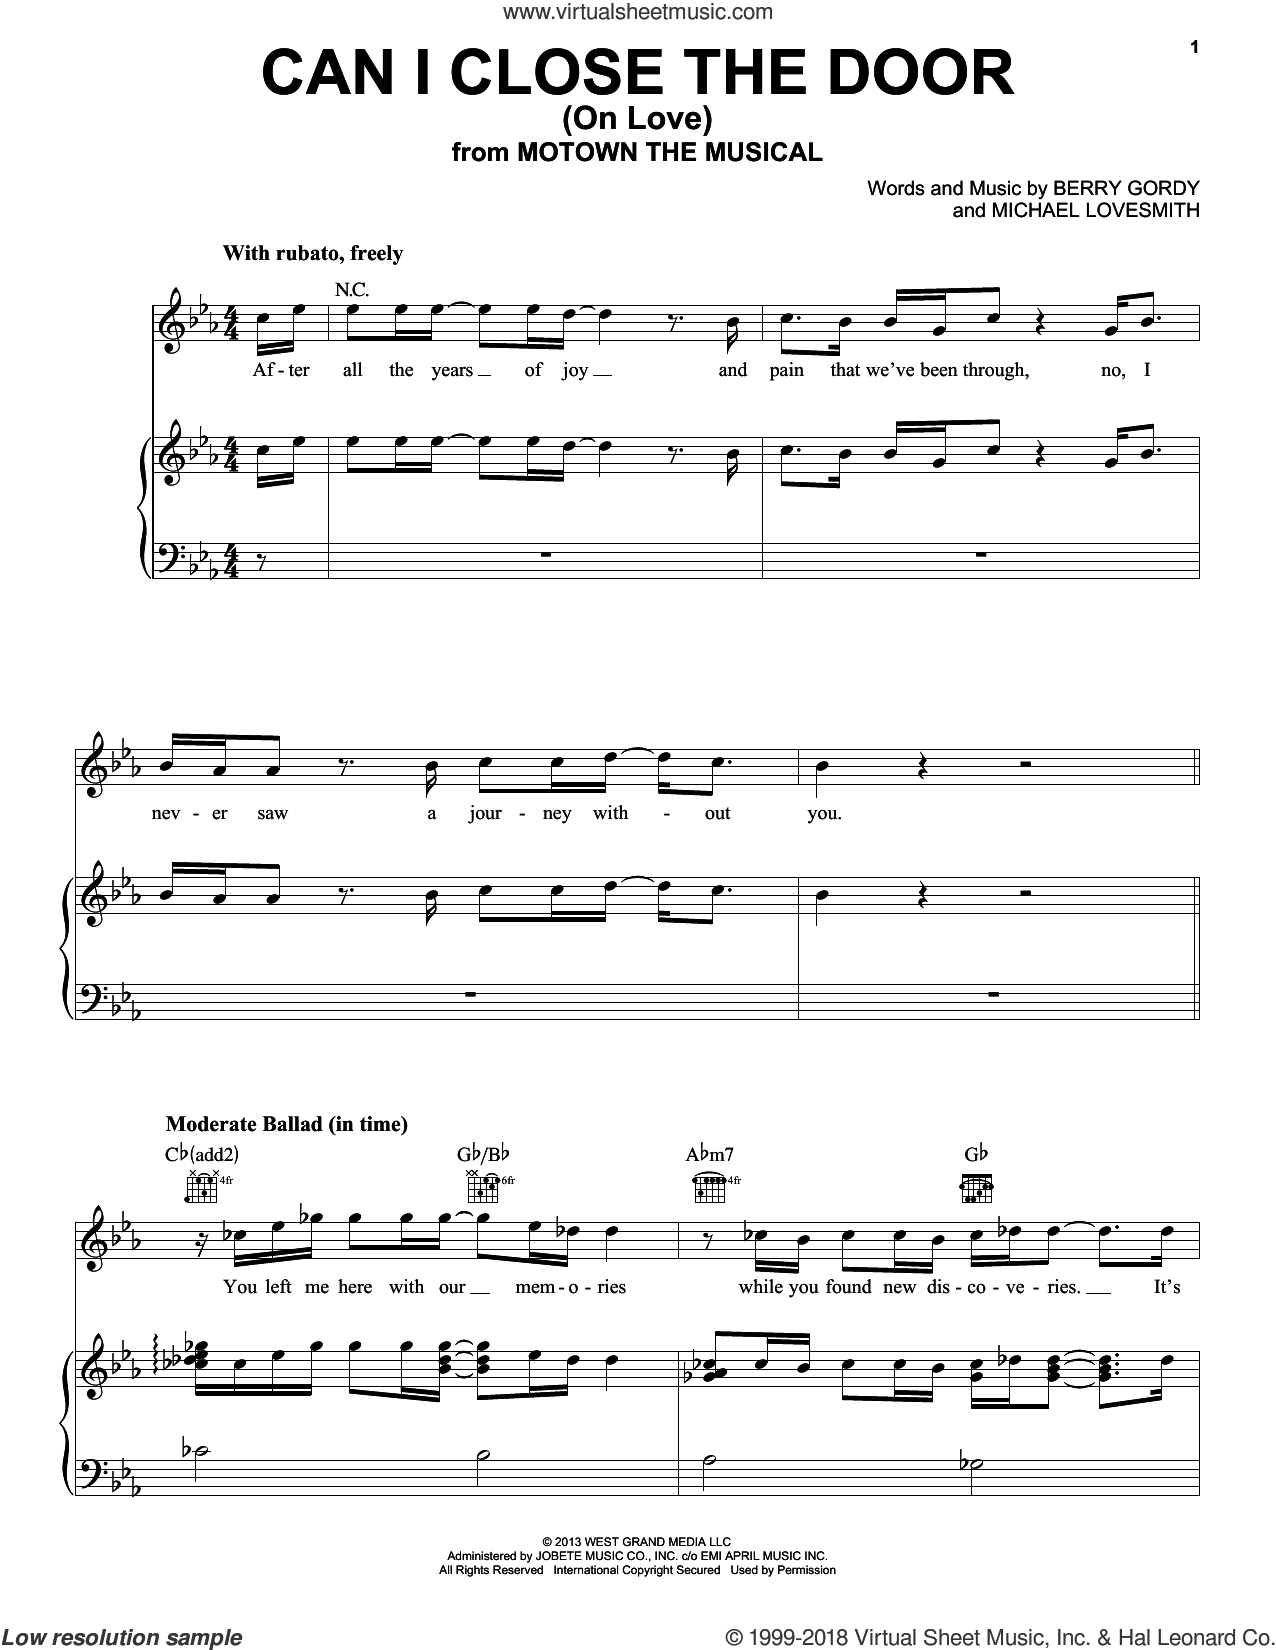 Can I Close The Door (On Love) sheet music for voice, piano or guitar by Berry Gordy and Michael Lovesmith, intermediate skill level